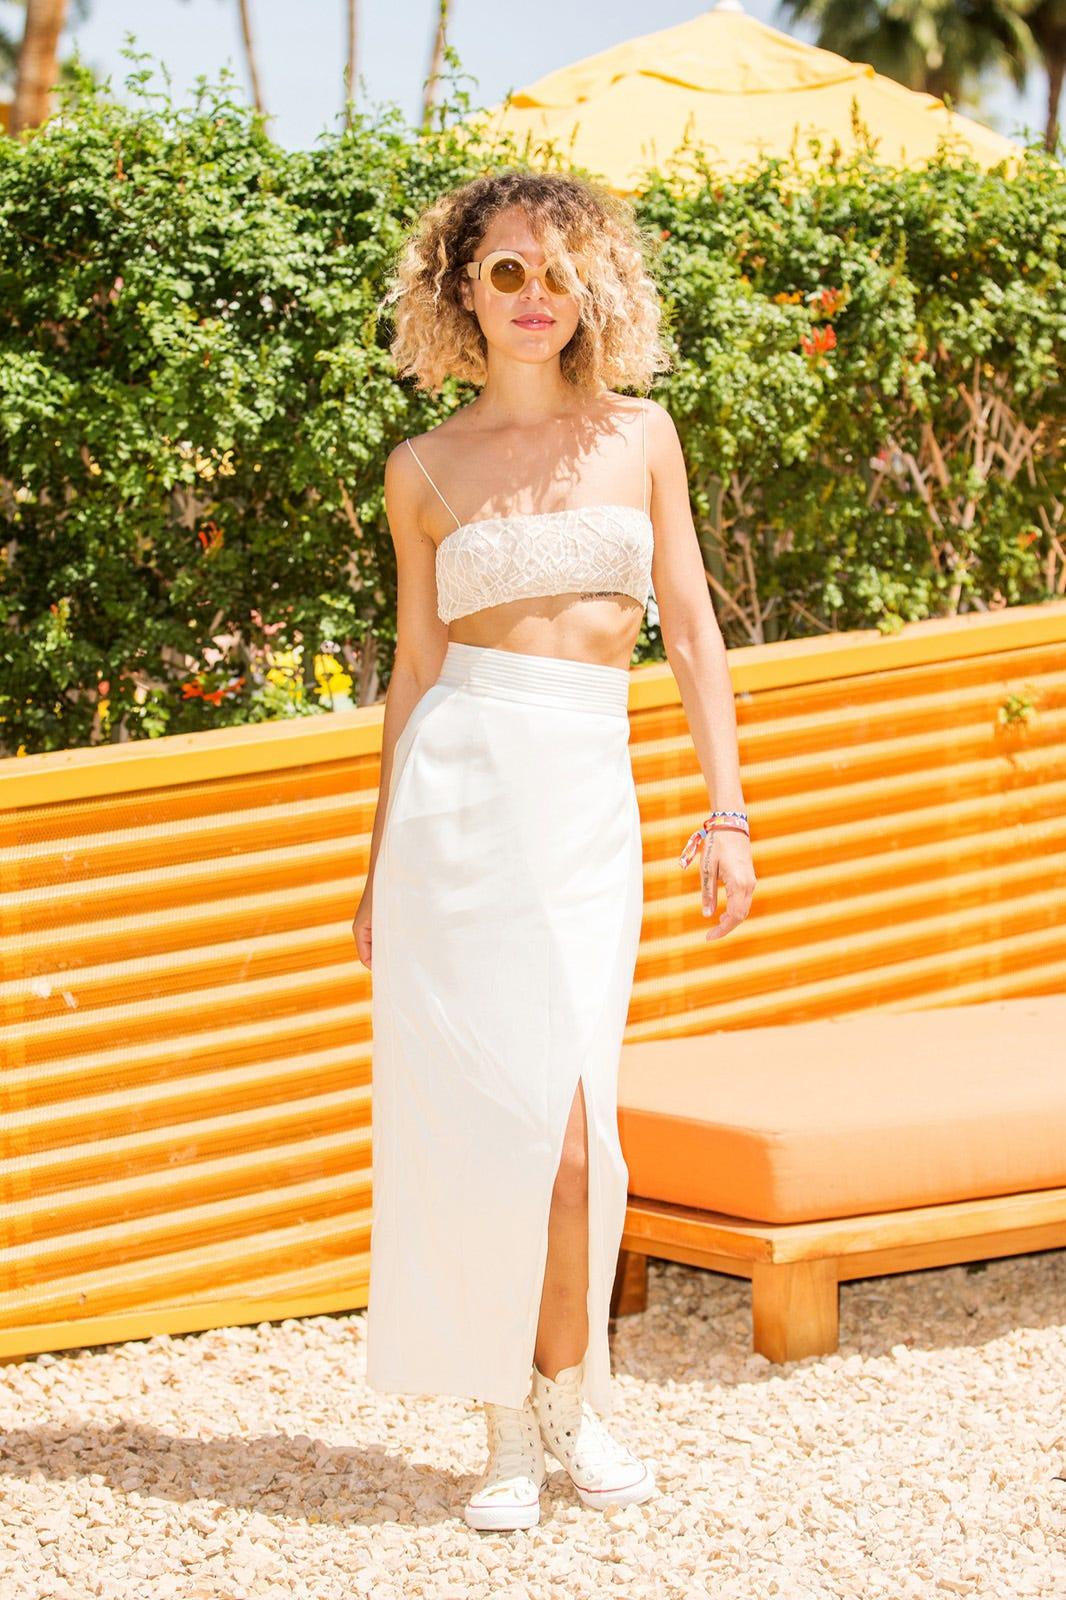 http://www.refinery29.com/2015/04/85205/coachella-2015-street-style-pictures?utm_source=email&utm_medium=editorial&utm_content=everywhere&utm_campaign=150413-coachella-2015-street-style-pictures#slide-22